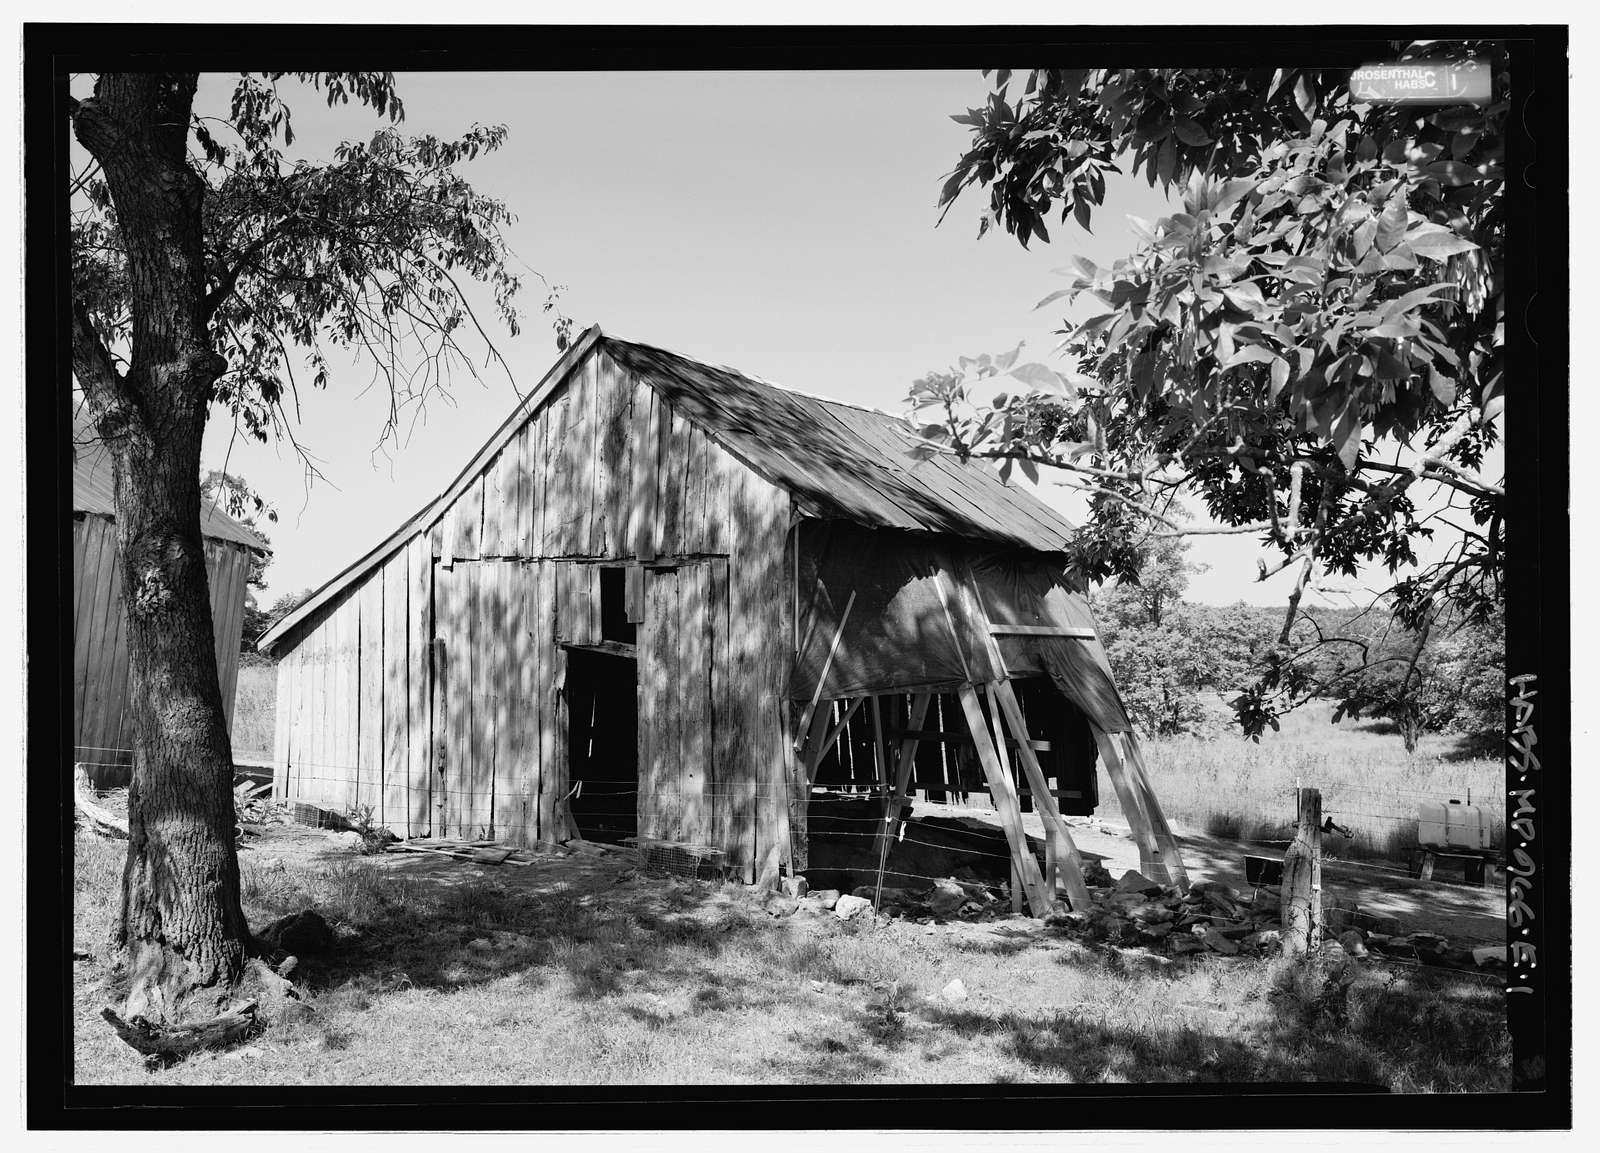 Joseph Poffenberger Farm, Shop, 17834 Mansfield Avenue, Sharpsburg, Washington County, MD